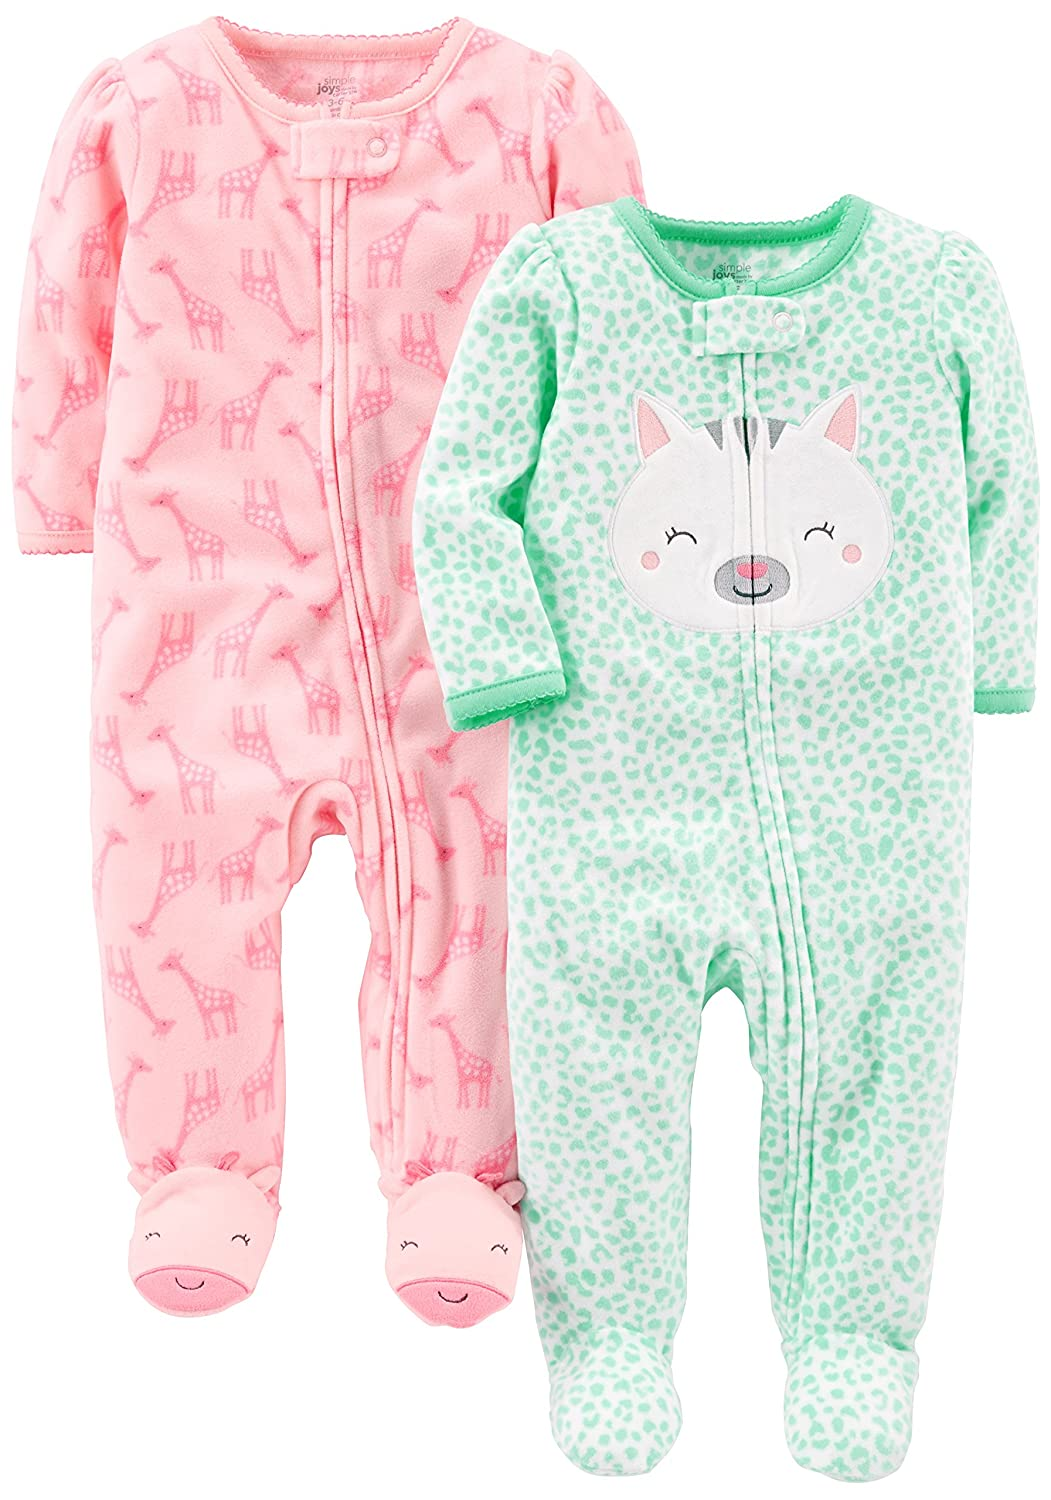 Simple Joys by Carters Baby-Girls 2-Pack Fleece Footed Sleep and Play